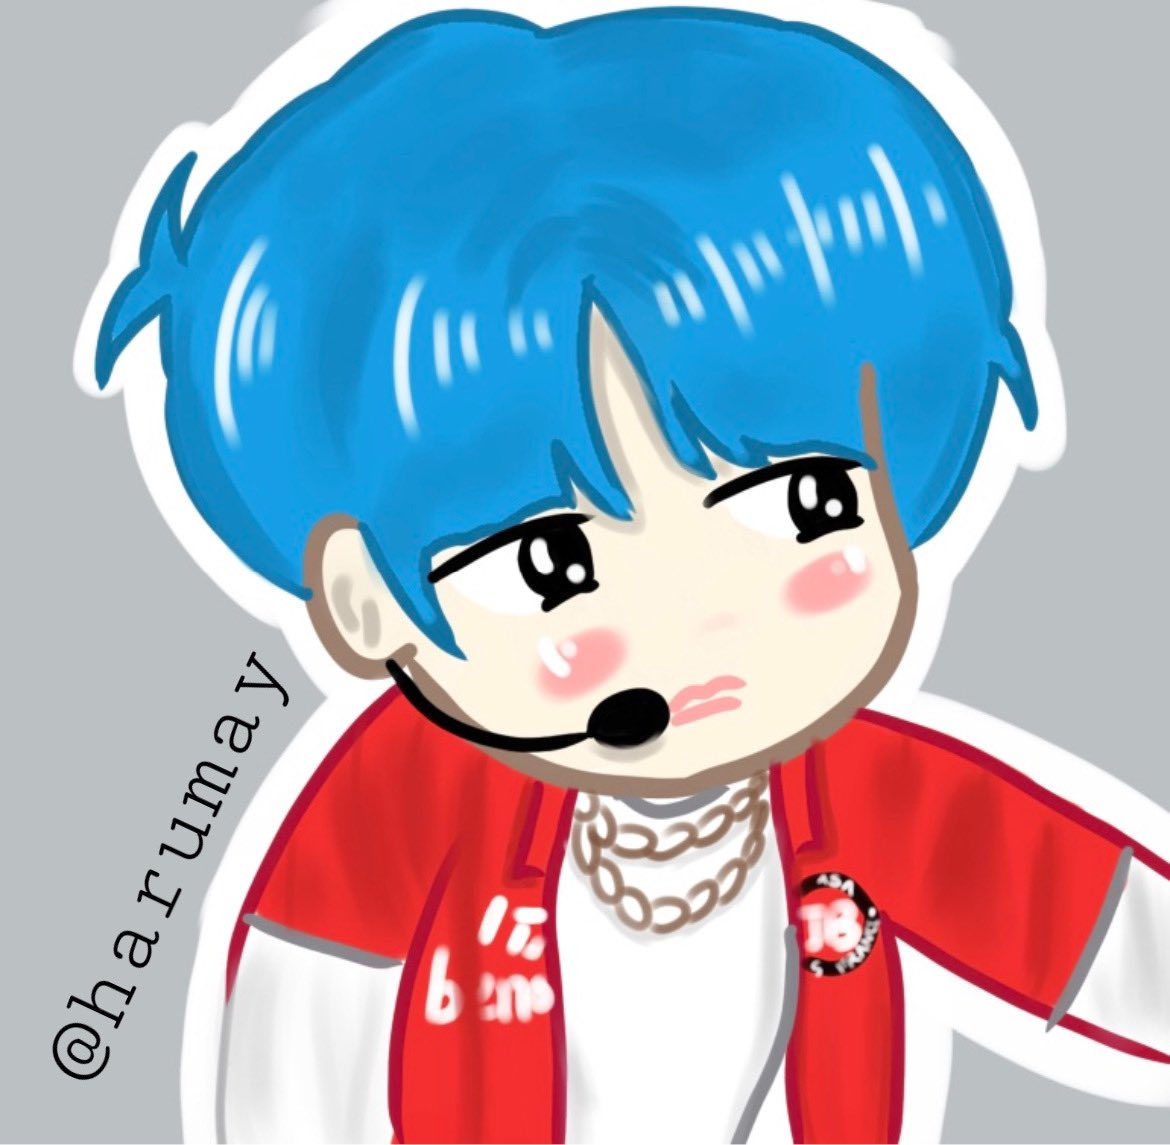 90's love @NCTsmtown @NCTsmtown_DREAM #JENO #NCTU  #90sLove #CHIBII #fanart #NCT